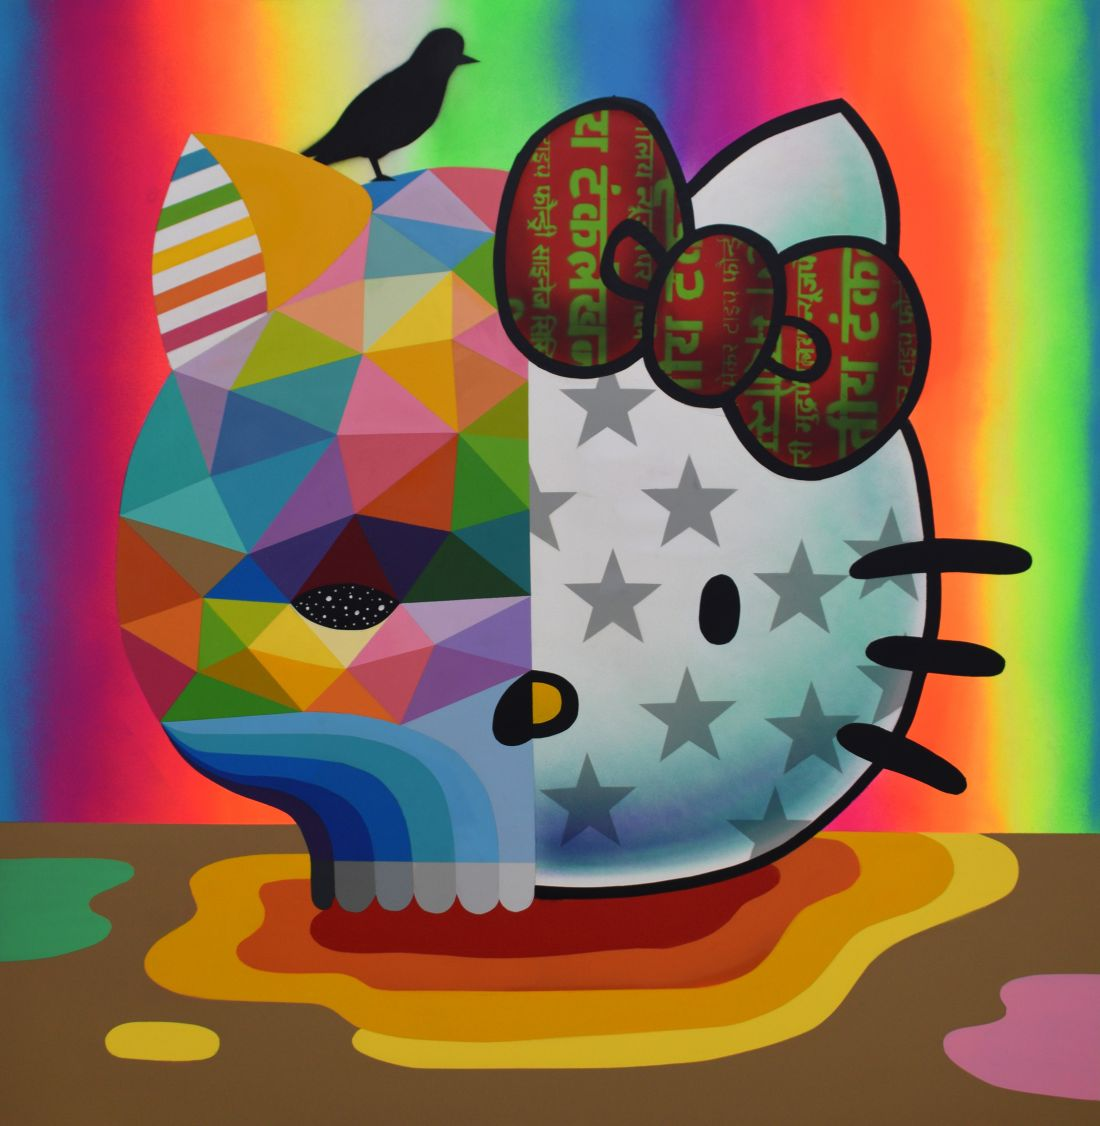 Okuda San Miguel 'Hello Kitty Skull' (synthetic enamel on wood, 39.4 x 39.4 inches)